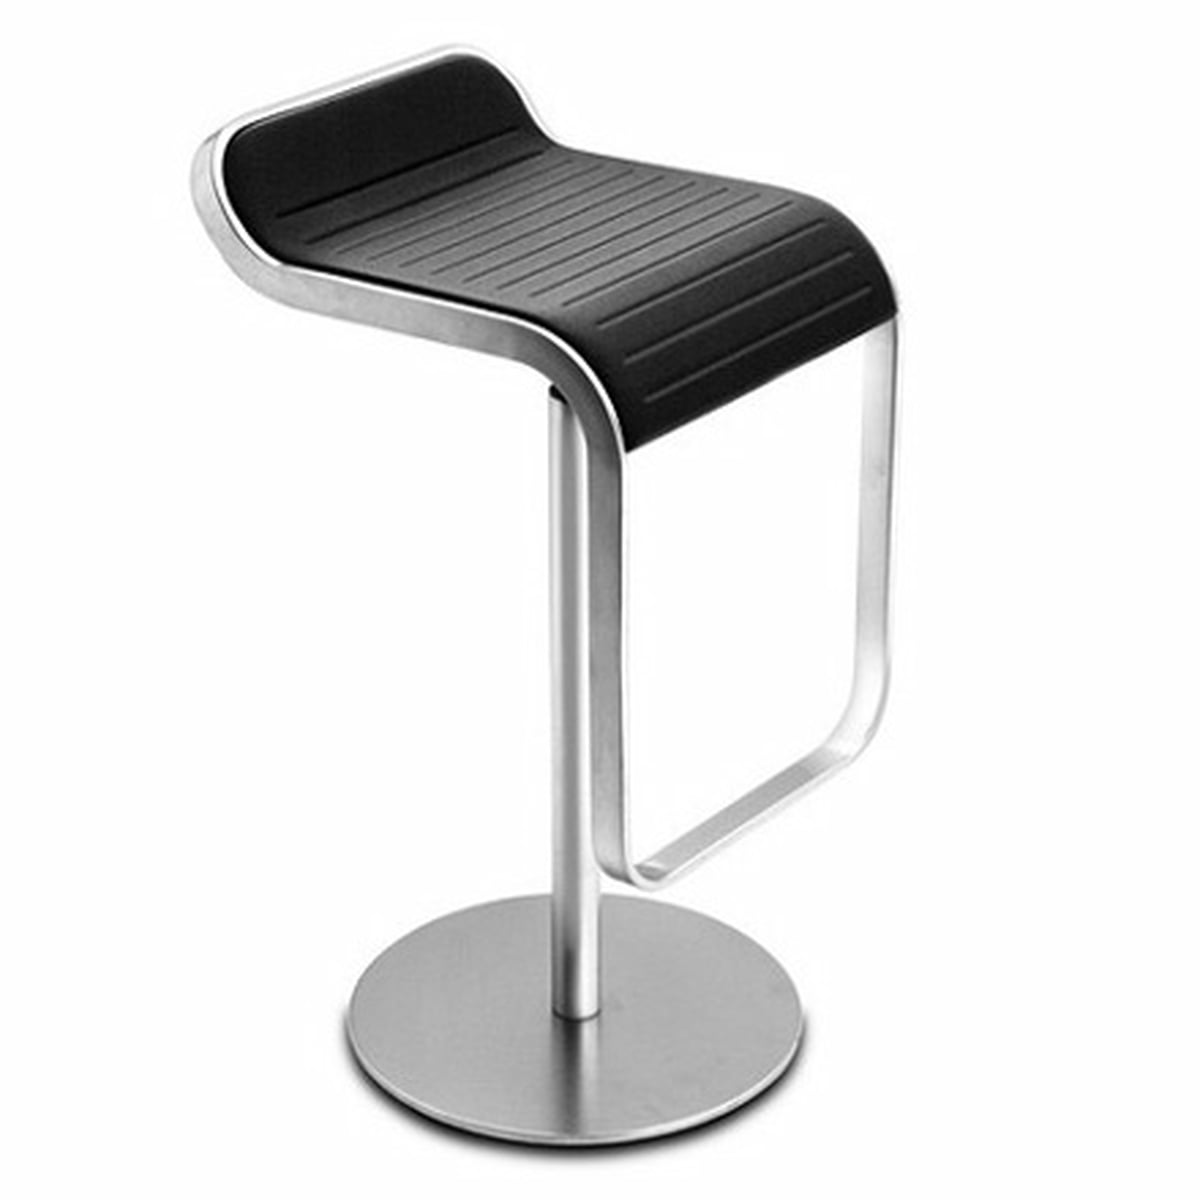 Lem bar stool by lapalma in the shop for Lapalma lem